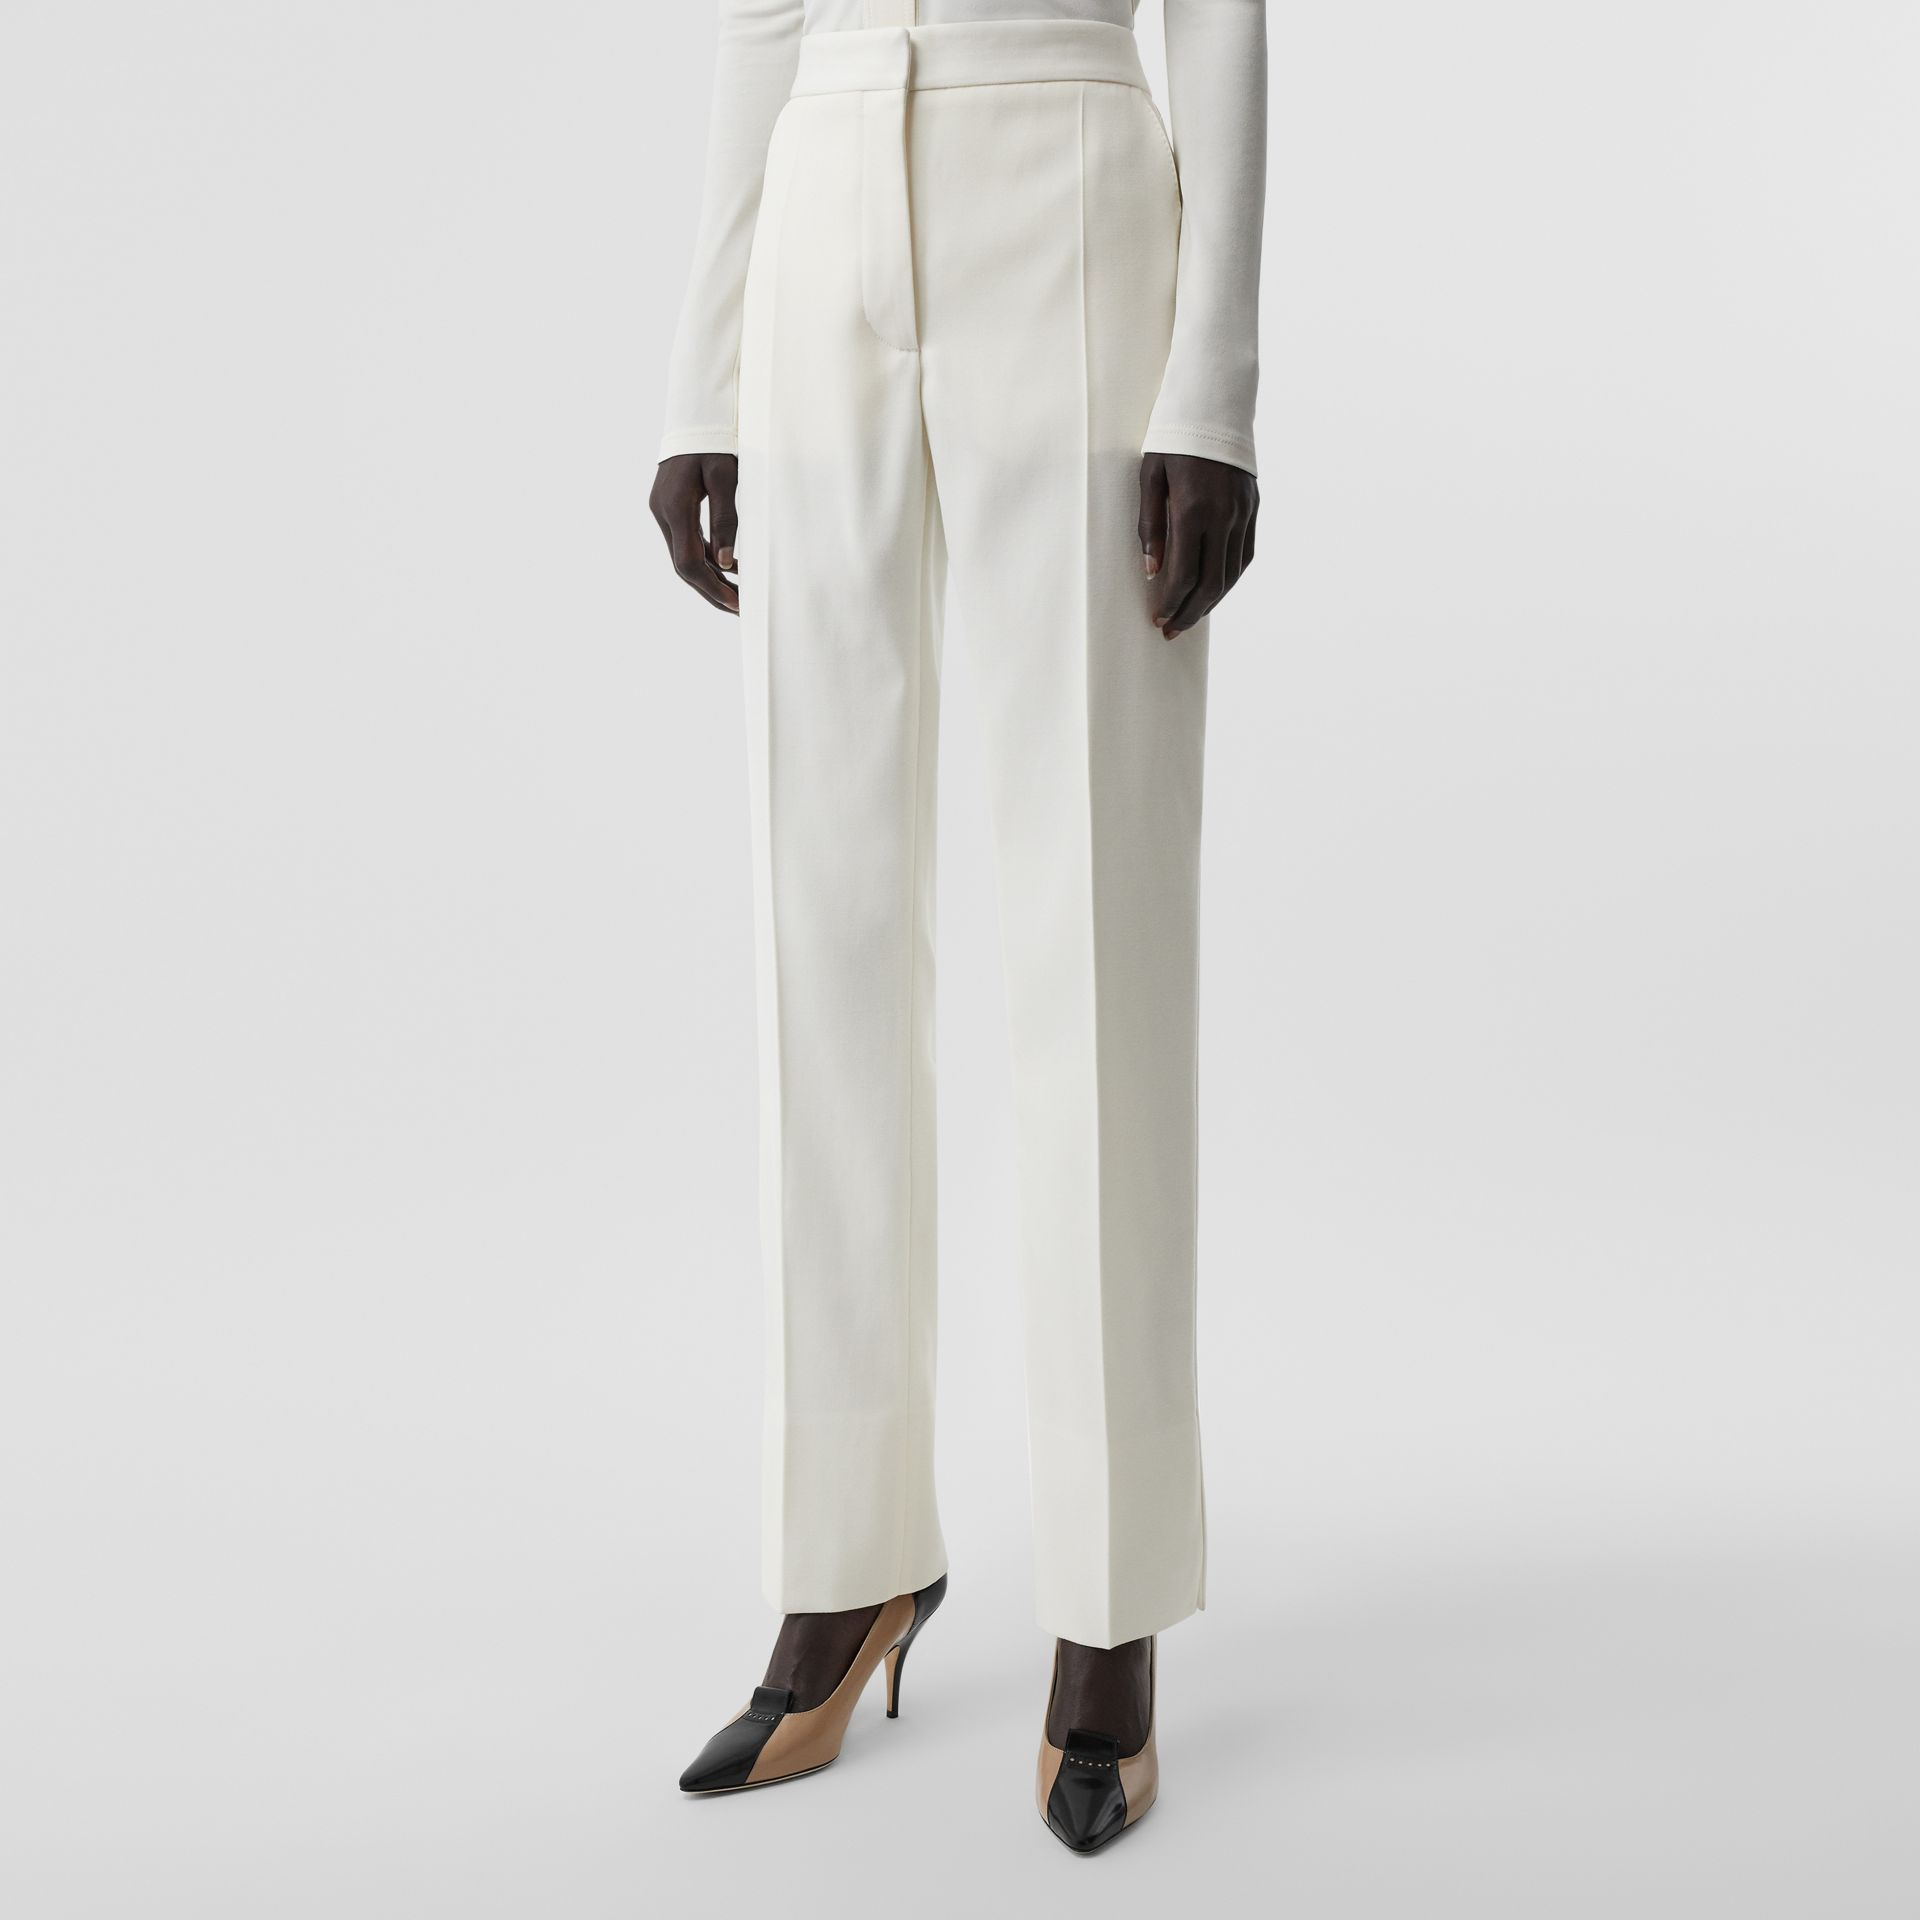 Satin Stripe Detail Wool Tailored Trousers in Natural White - Women | Burberry - gallery image 4